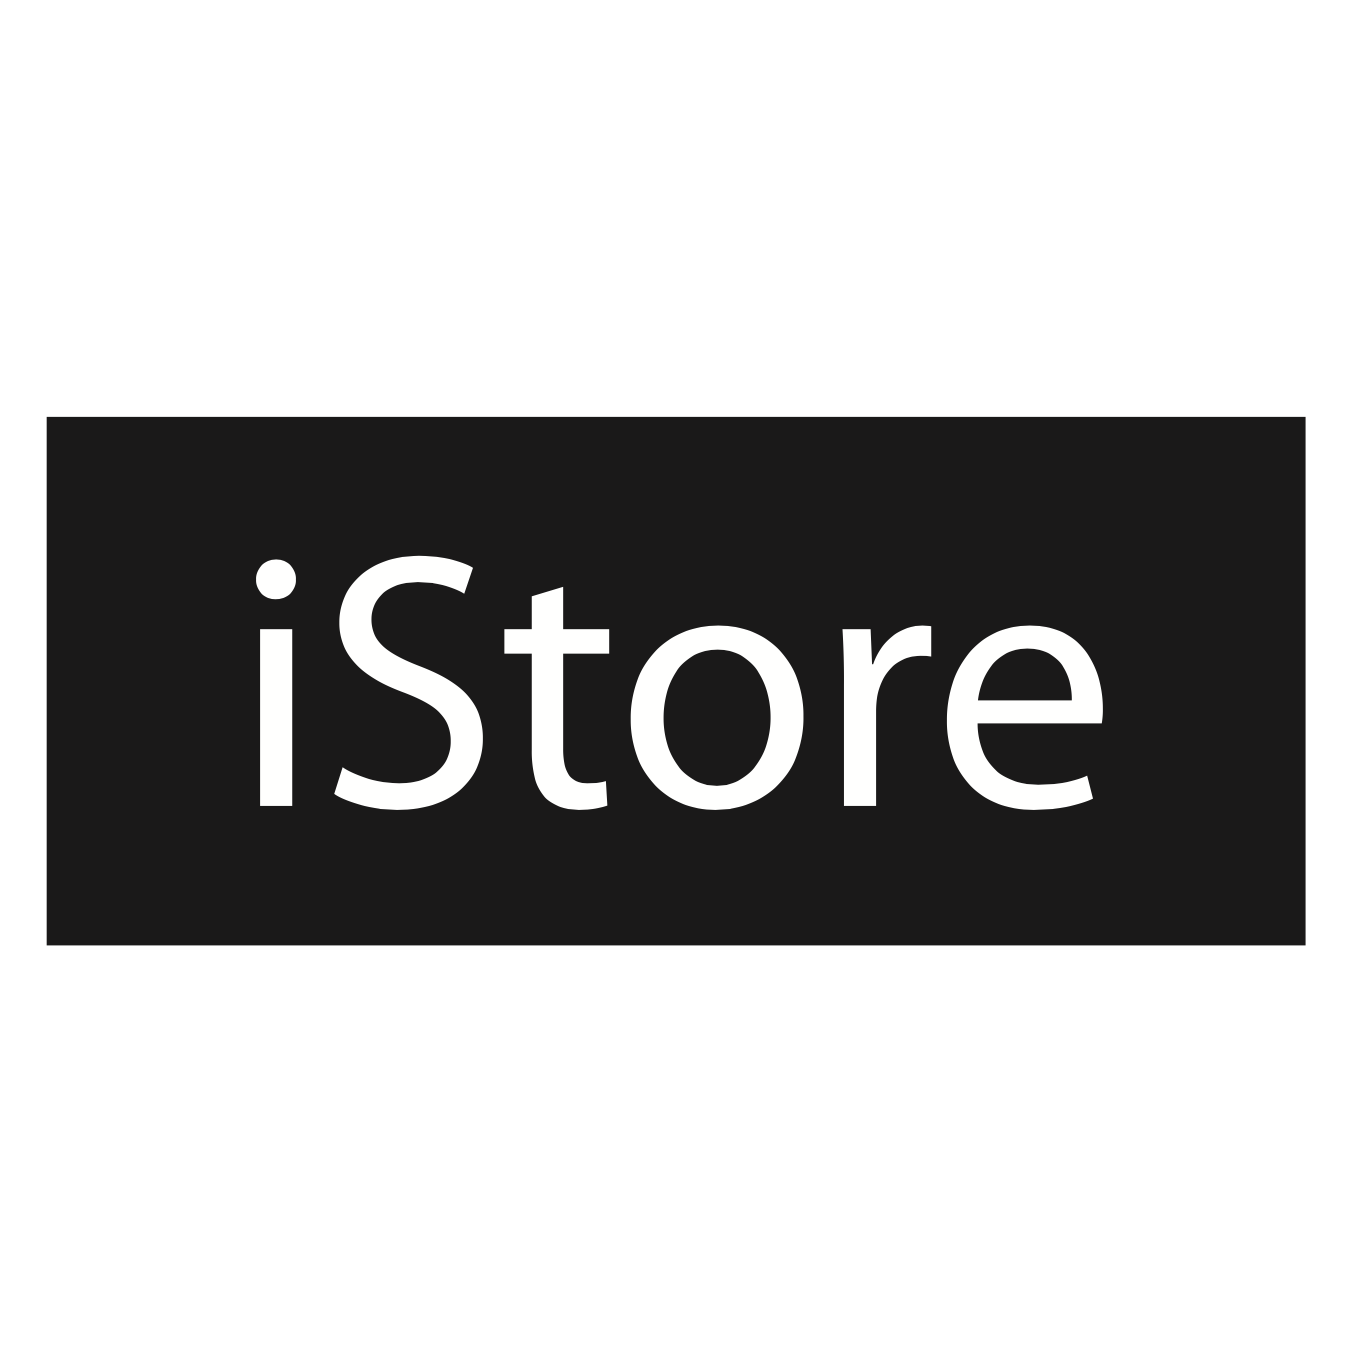 iStore Ligtning cable 1m - White